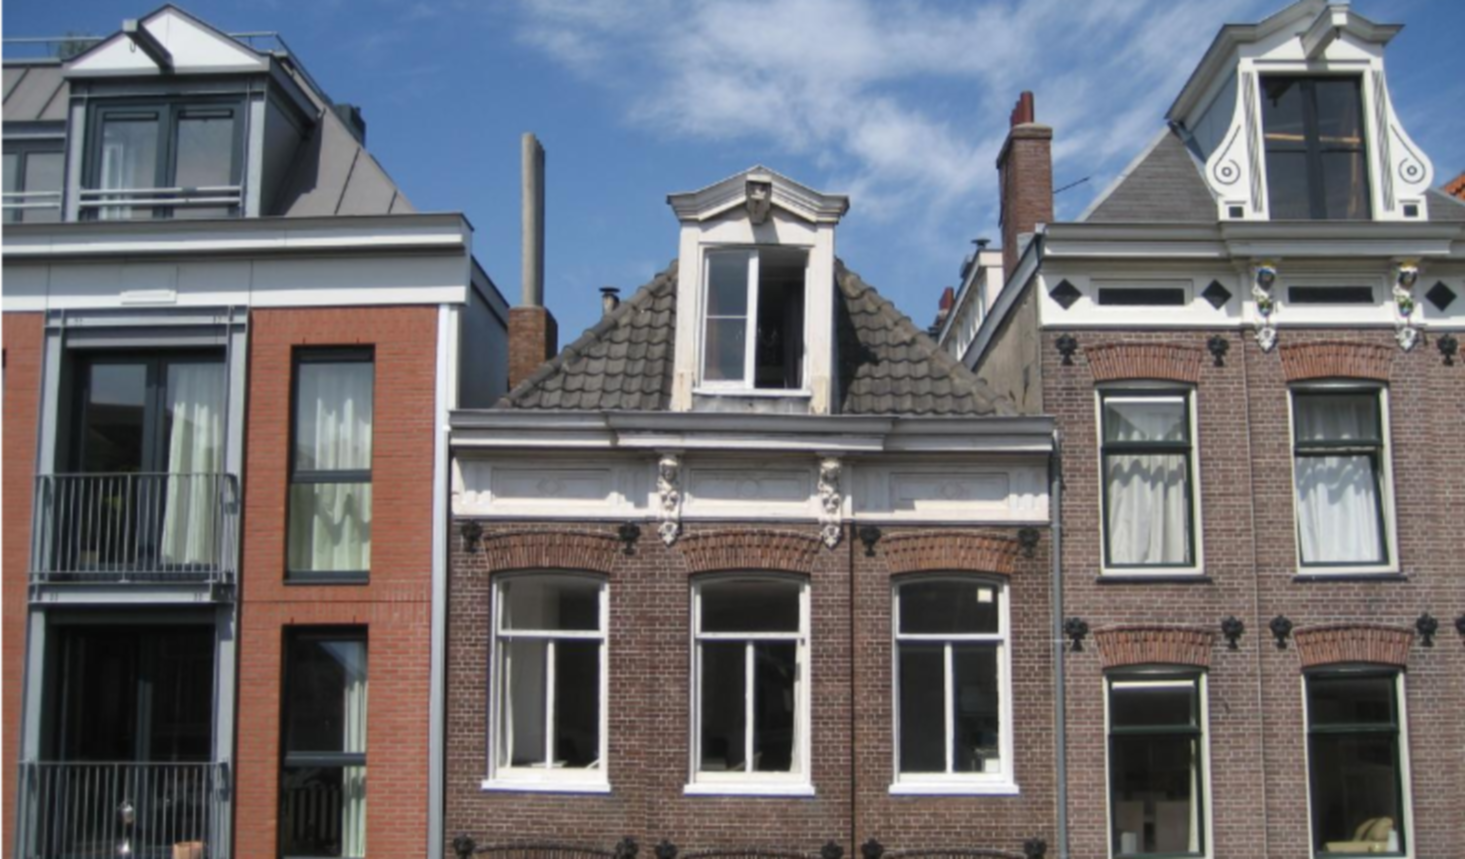 A large brick building with many windows at Goodnight Amsterdam.